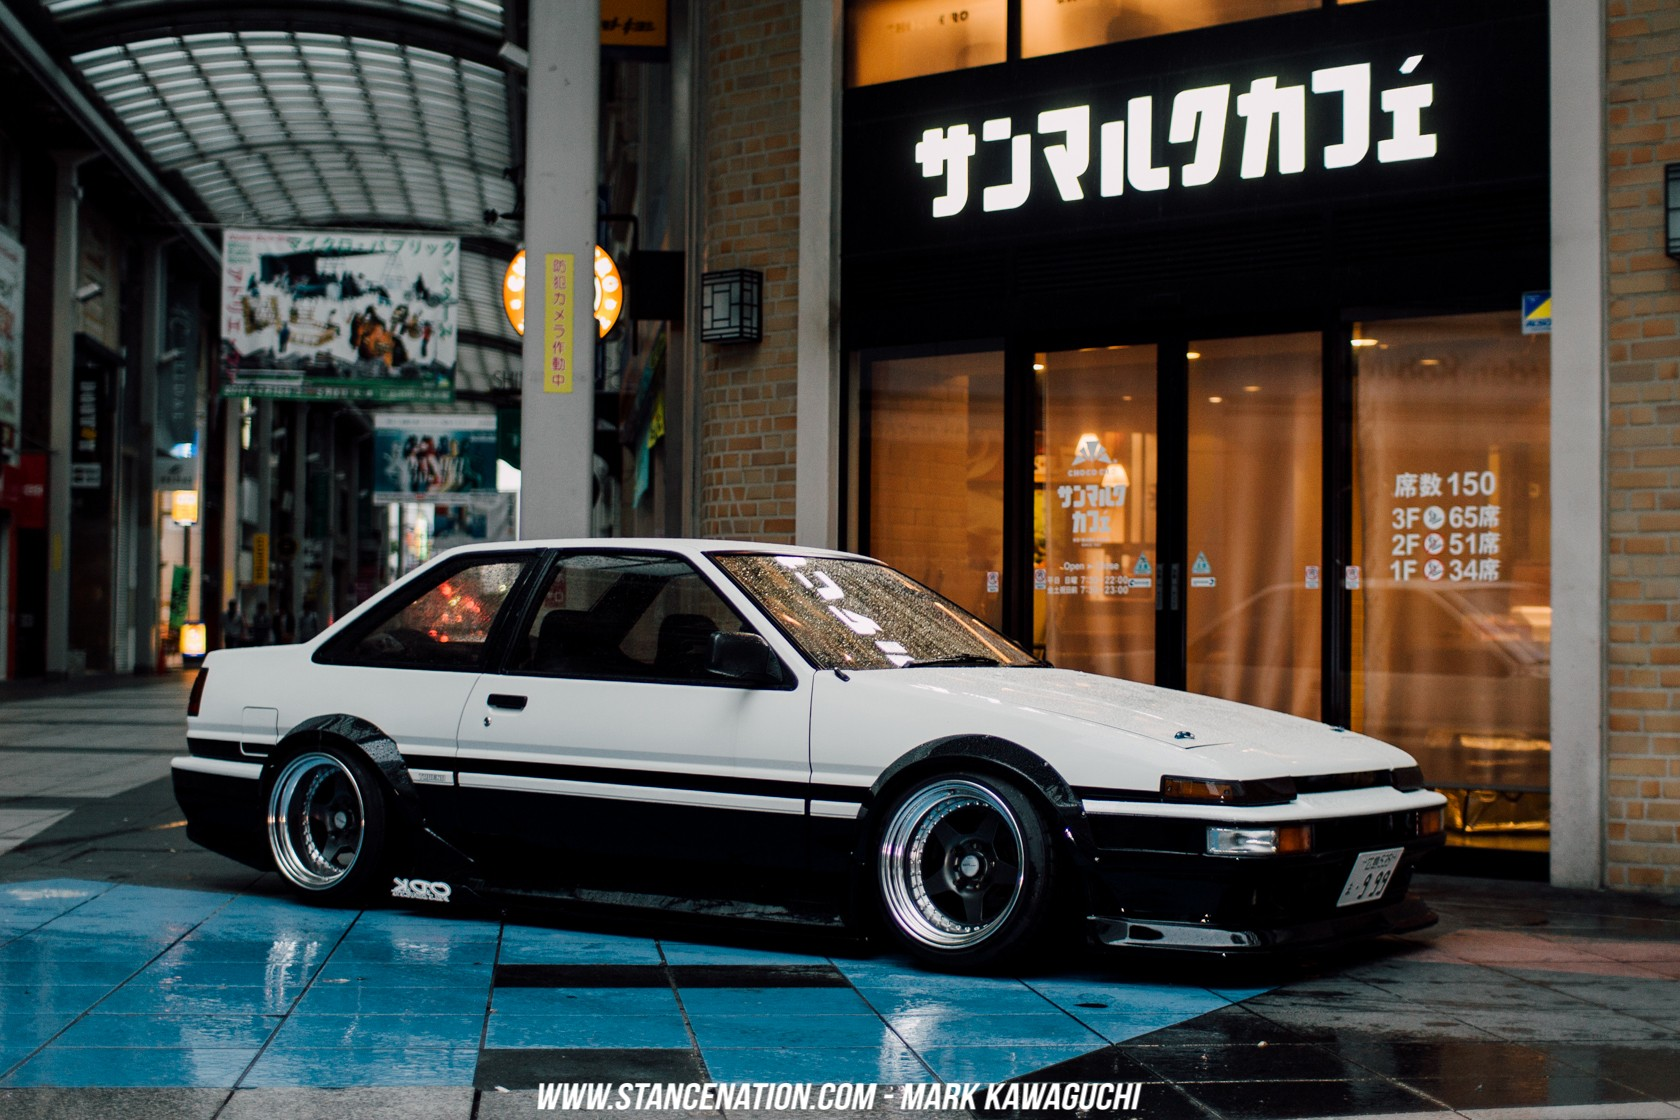 Stanced Drifting Cars Wallpaper 1366x768 Toyota Ae86 Wallpapers Hd Desktop And Mobile Backgrounds